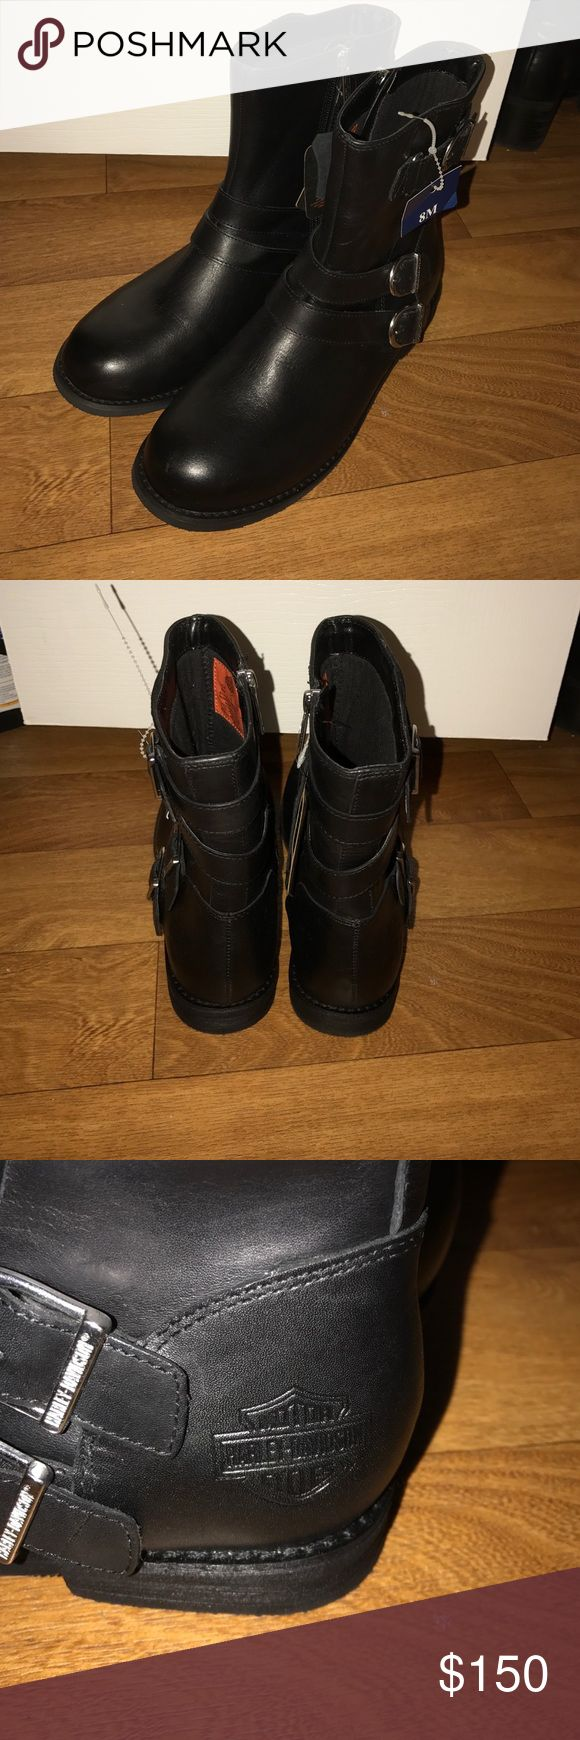 Women's Harley Davidson Boots Brand new. Never worn. Reasonable offers will be accepted Harley-Davidson Shoes Combat & Moto Boots